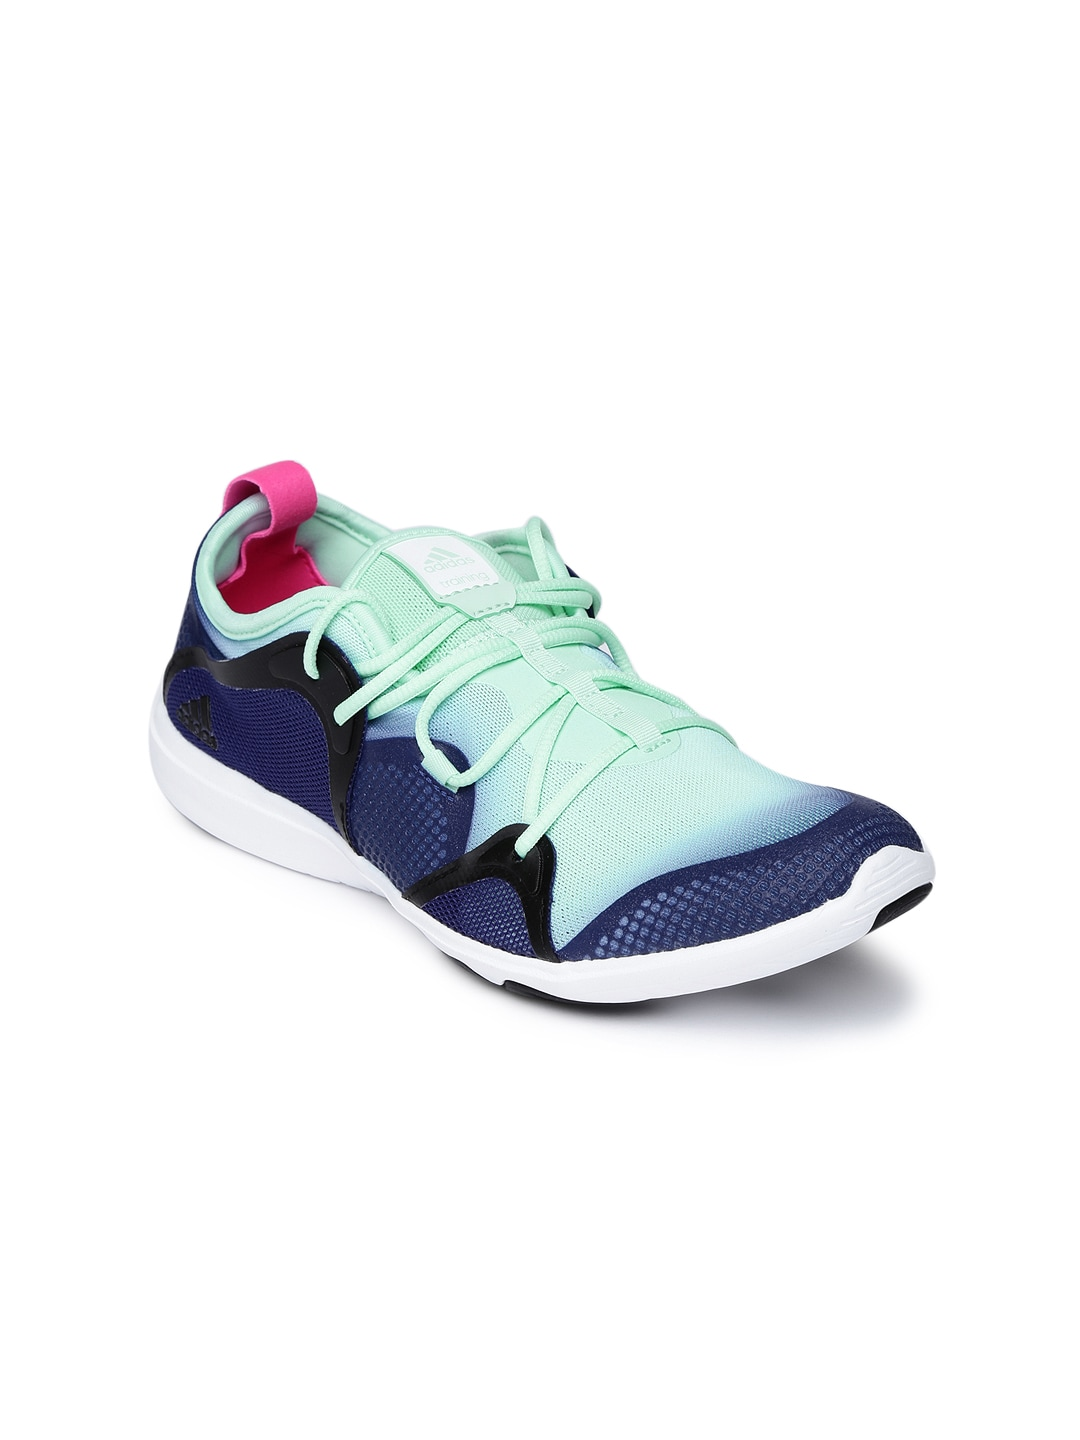 sports shoes bc936 ea244 Adidas aq1942 Women Mint Green And Blue Adipure 360 4 Training Shoes- Price  in India